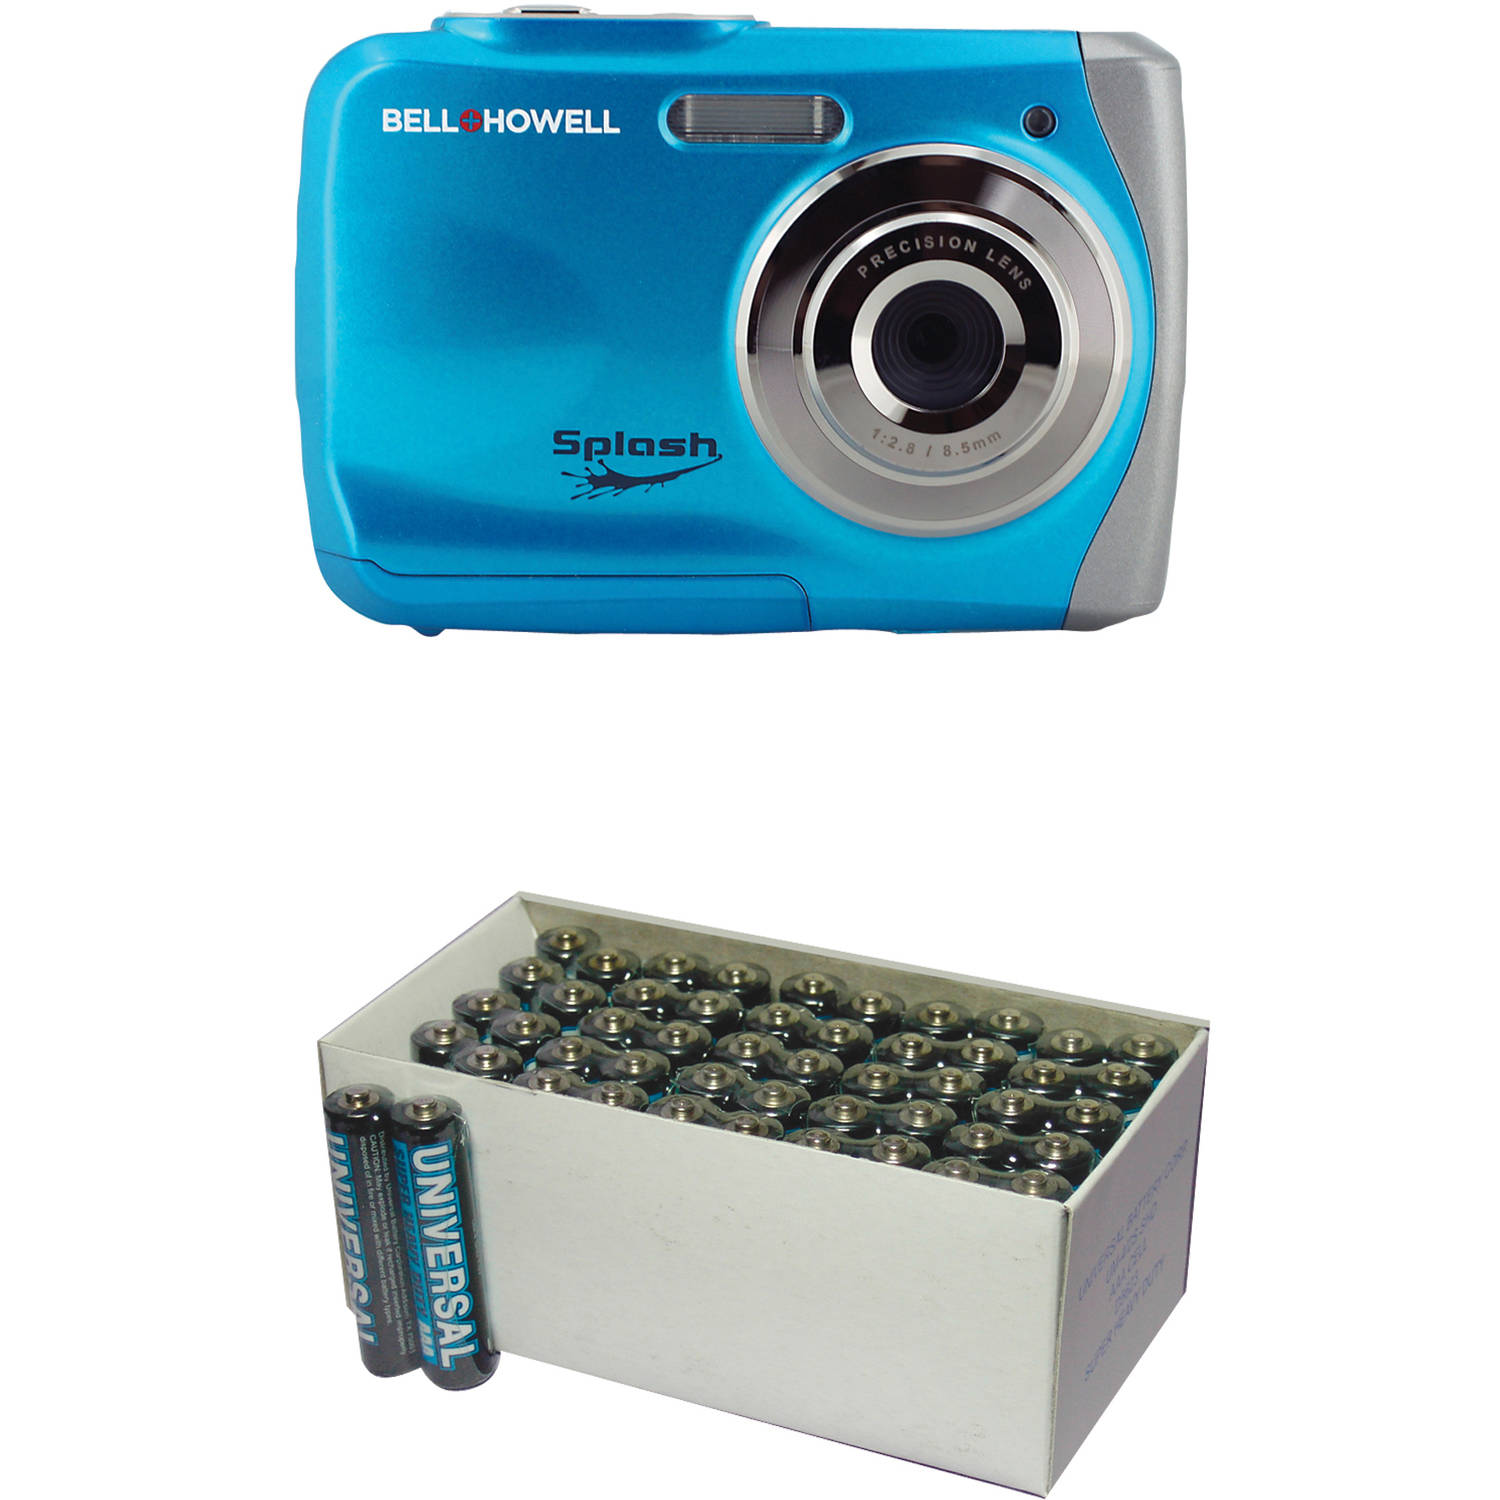 Bell+Howell Blue WP7 Waterproof Digital Camera with 12 Megapixels and UPG 50-Pack AAA Batteries